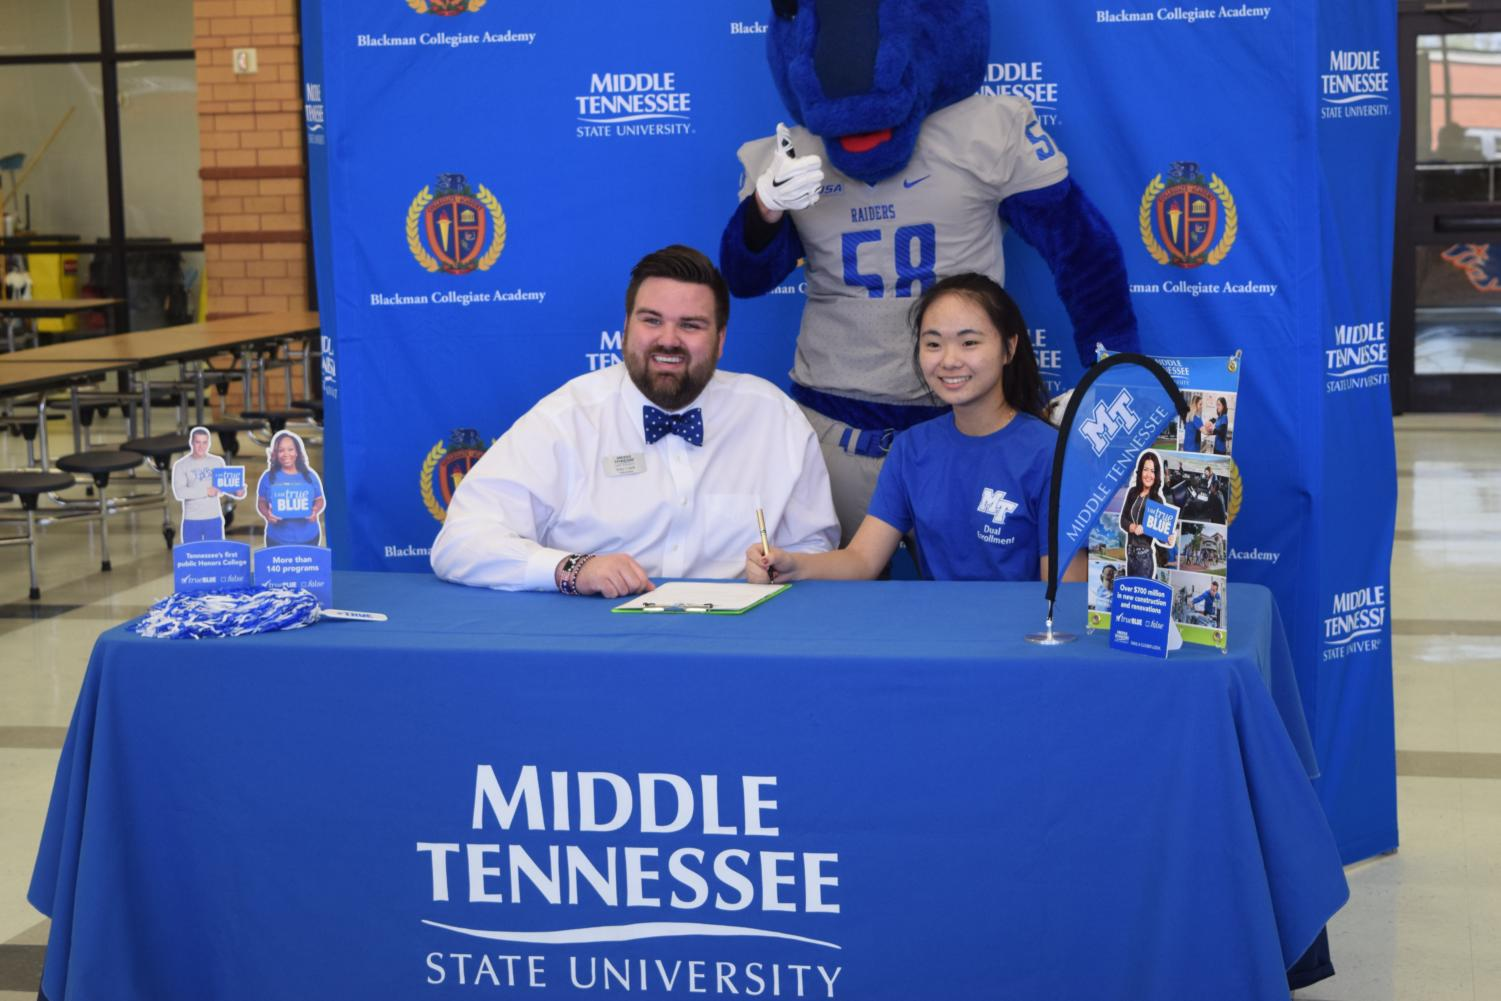 Amy+Lin+will+attend+Middle+Tennessee+State+University+in+the+fall.